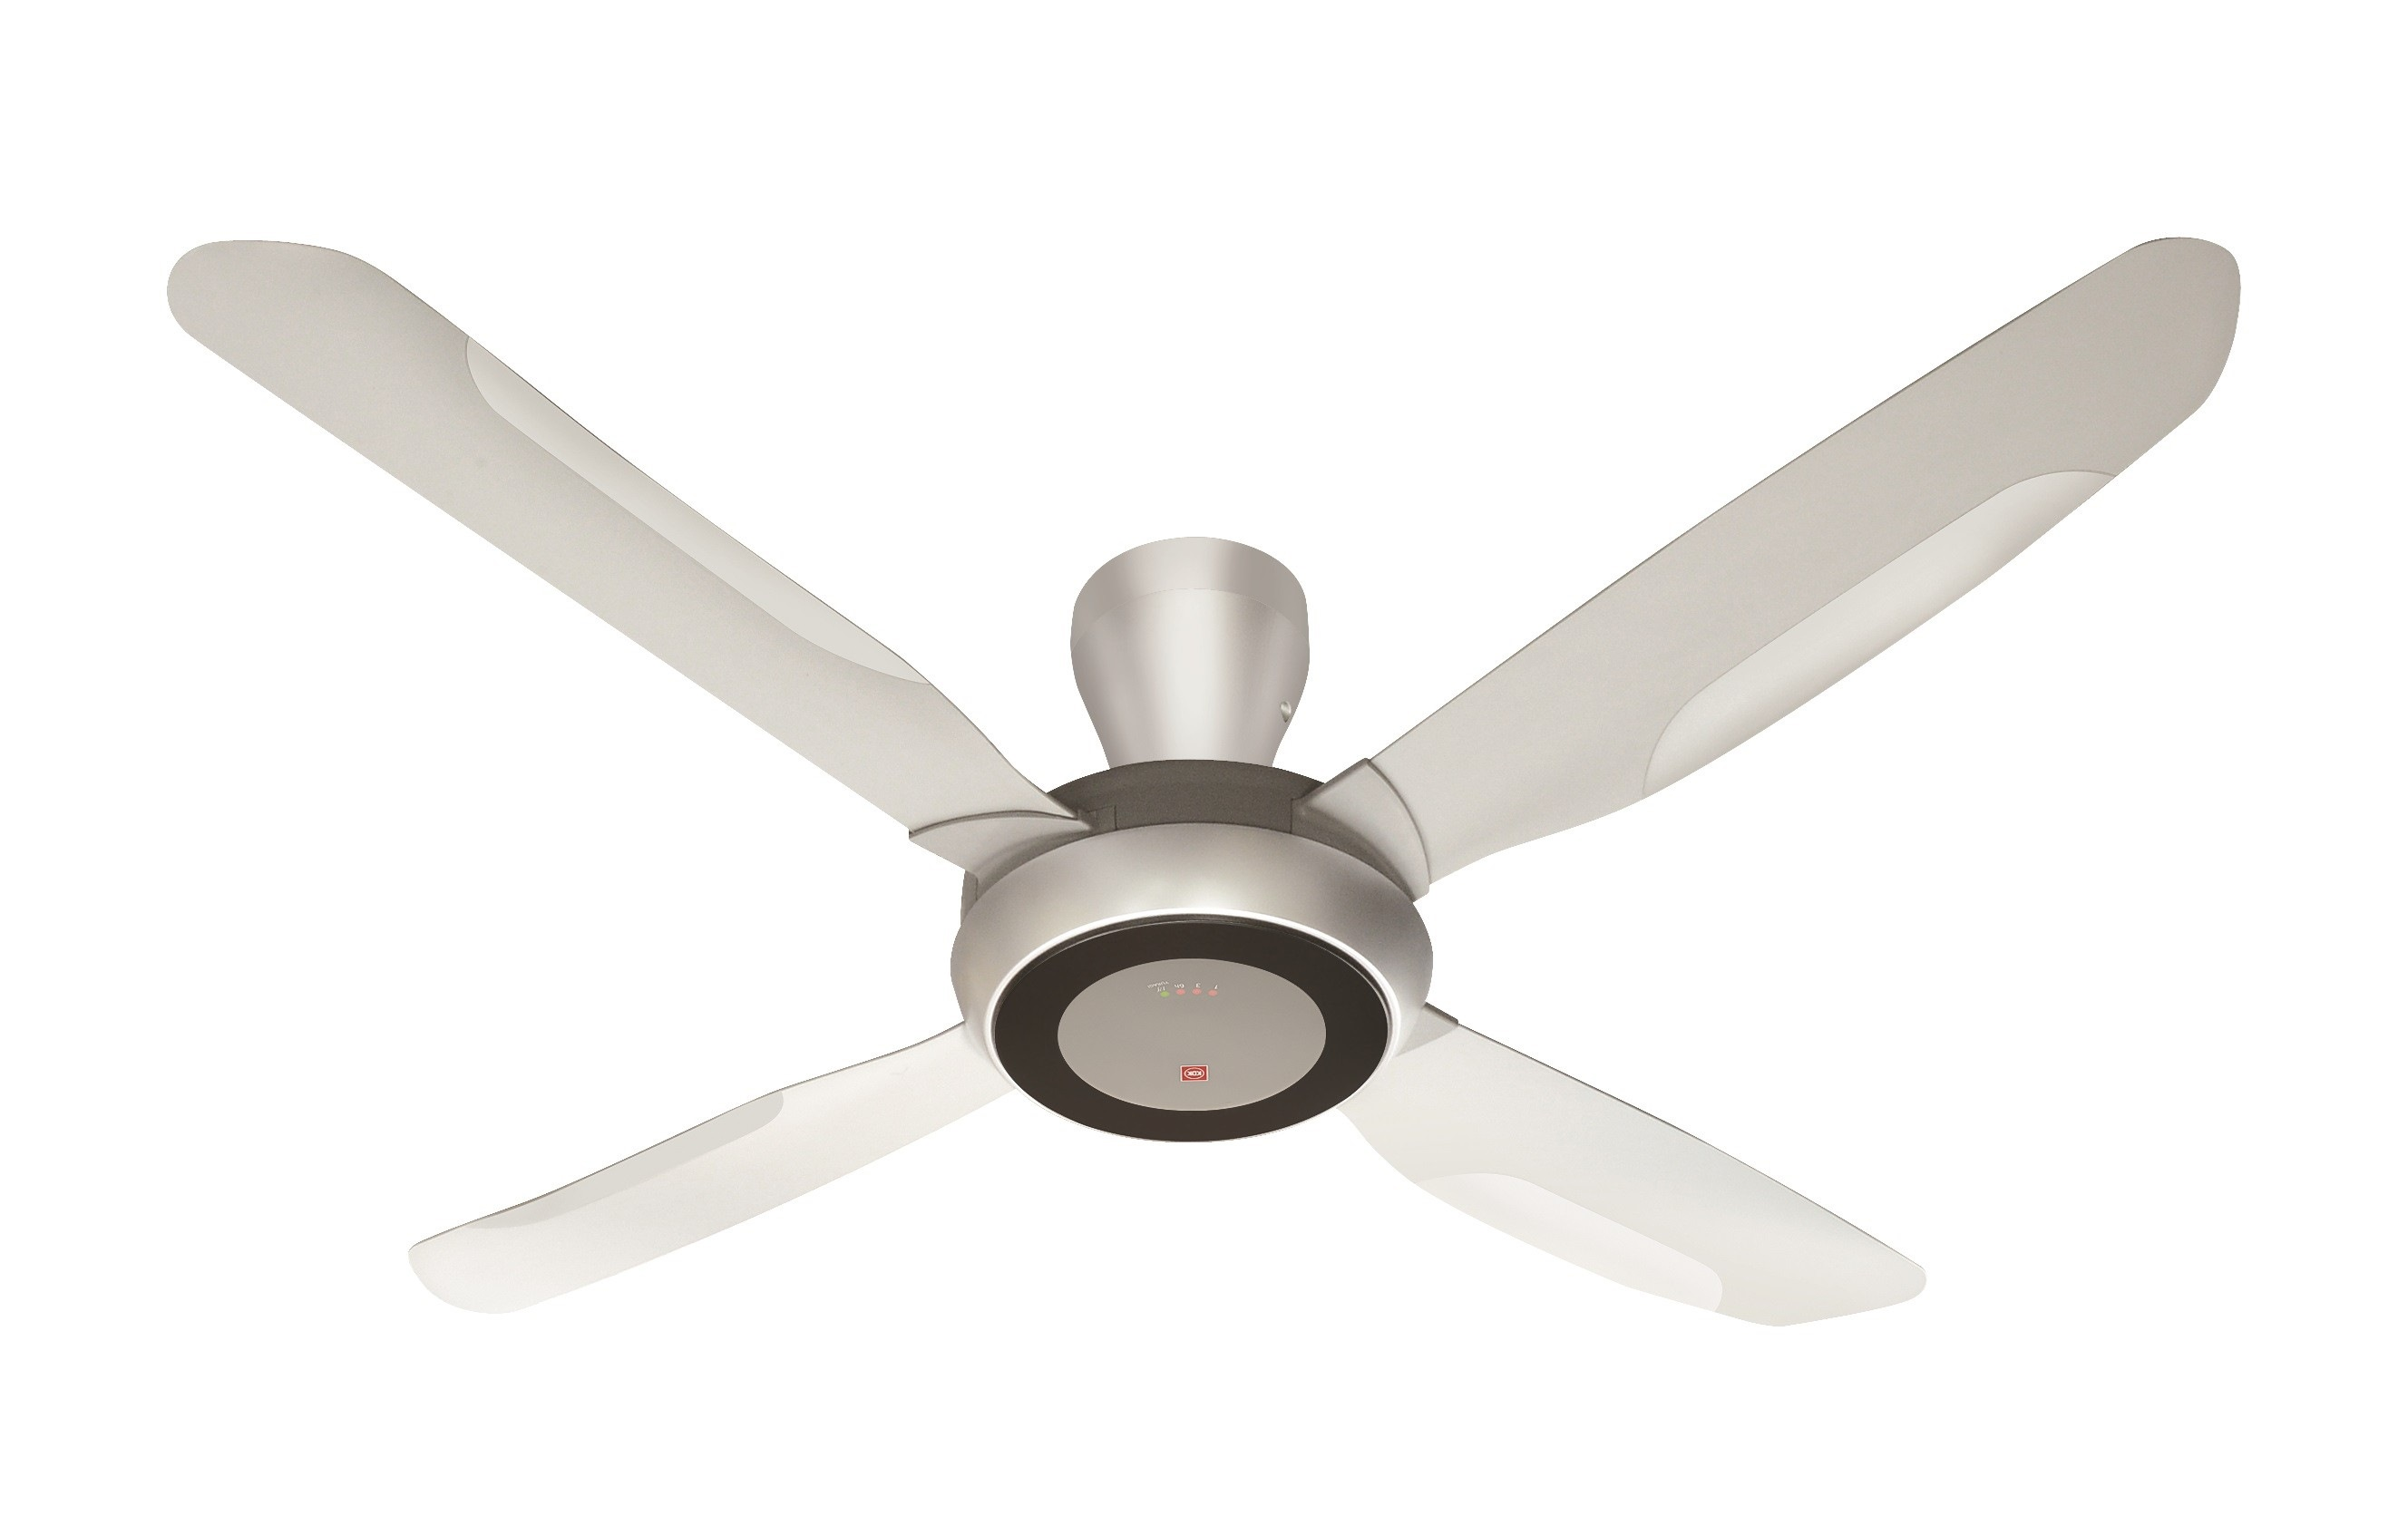 ceiling fan 4 blades. kdk 4 blade ceiling fan with remote r56sv ceiling fan blades